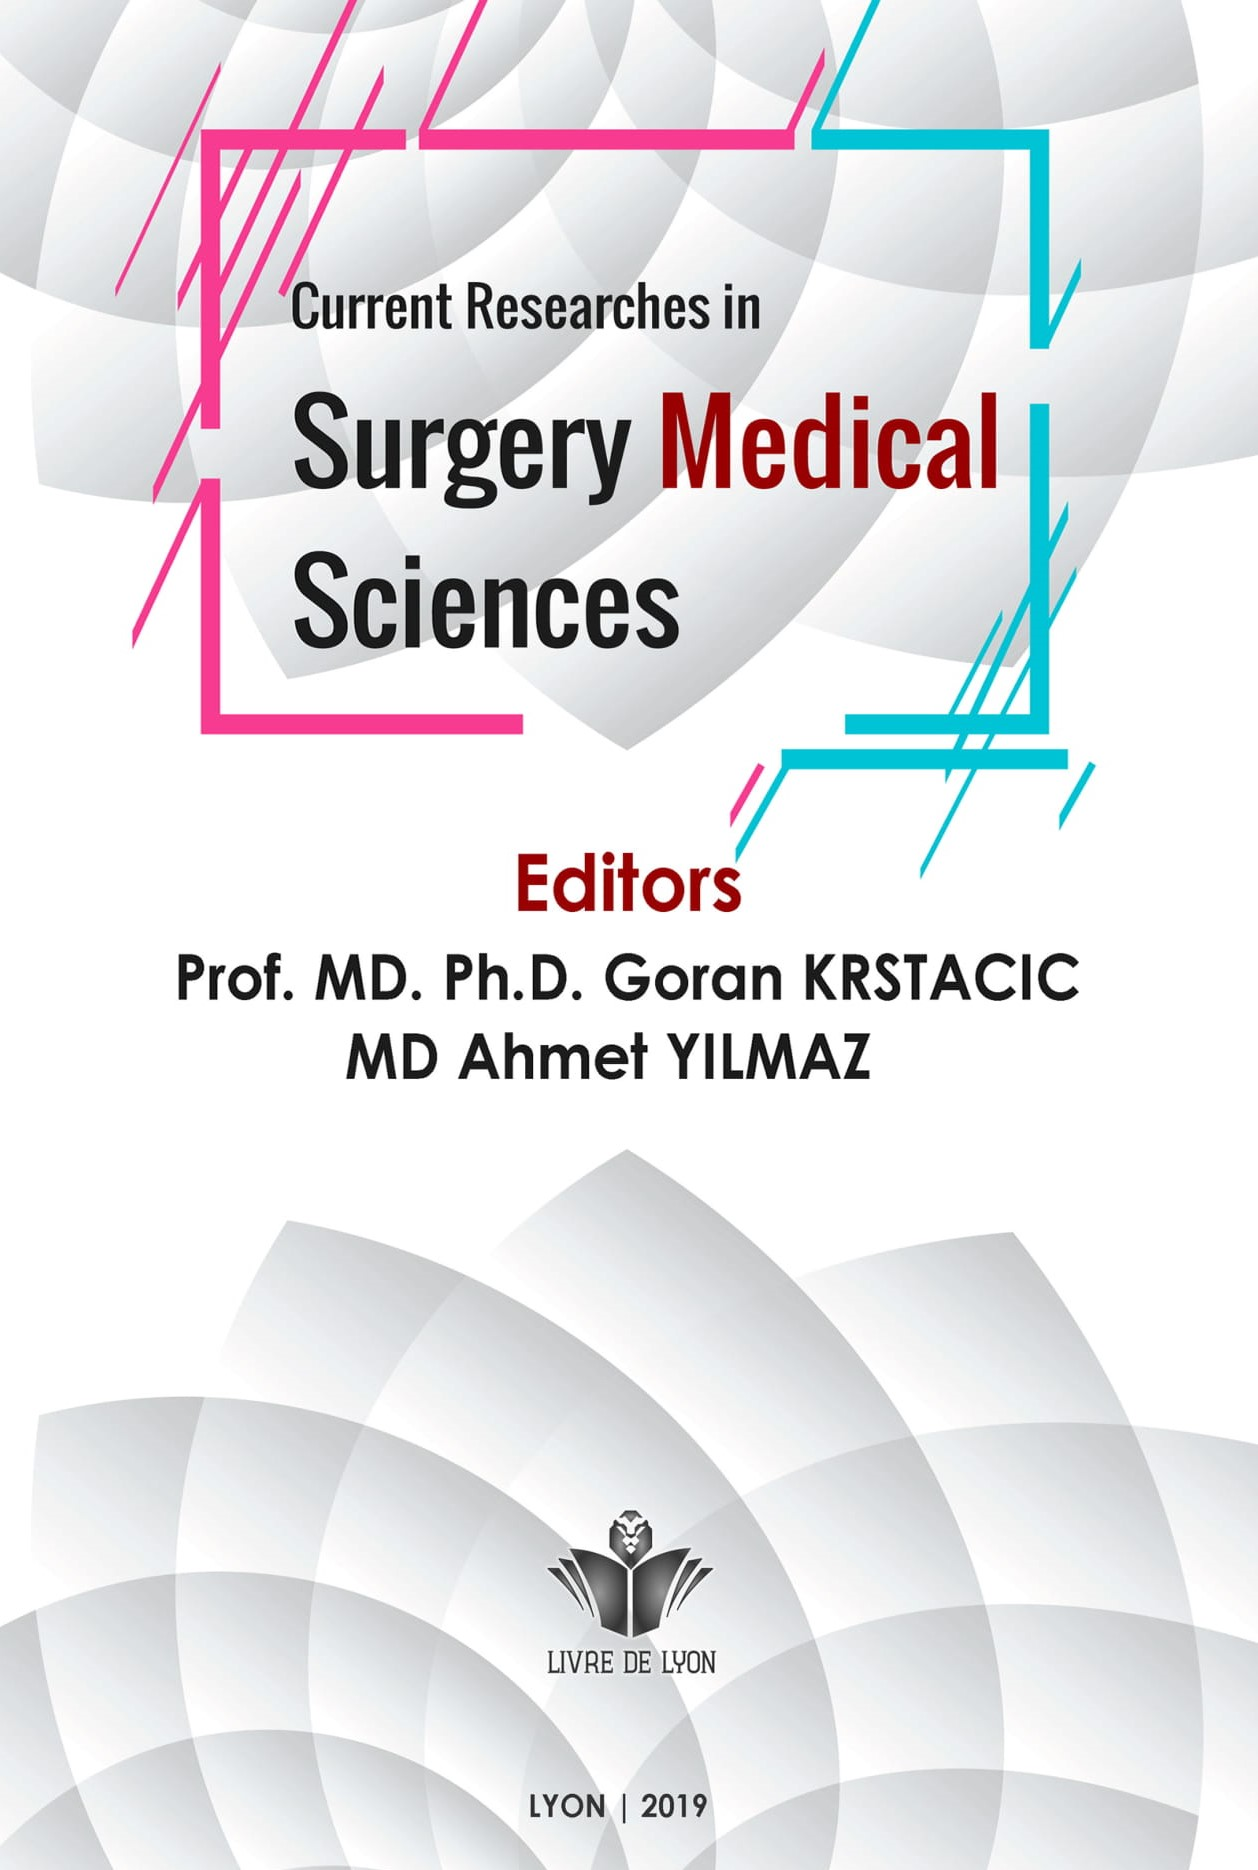 Current Research in Surgery Medical Sciences